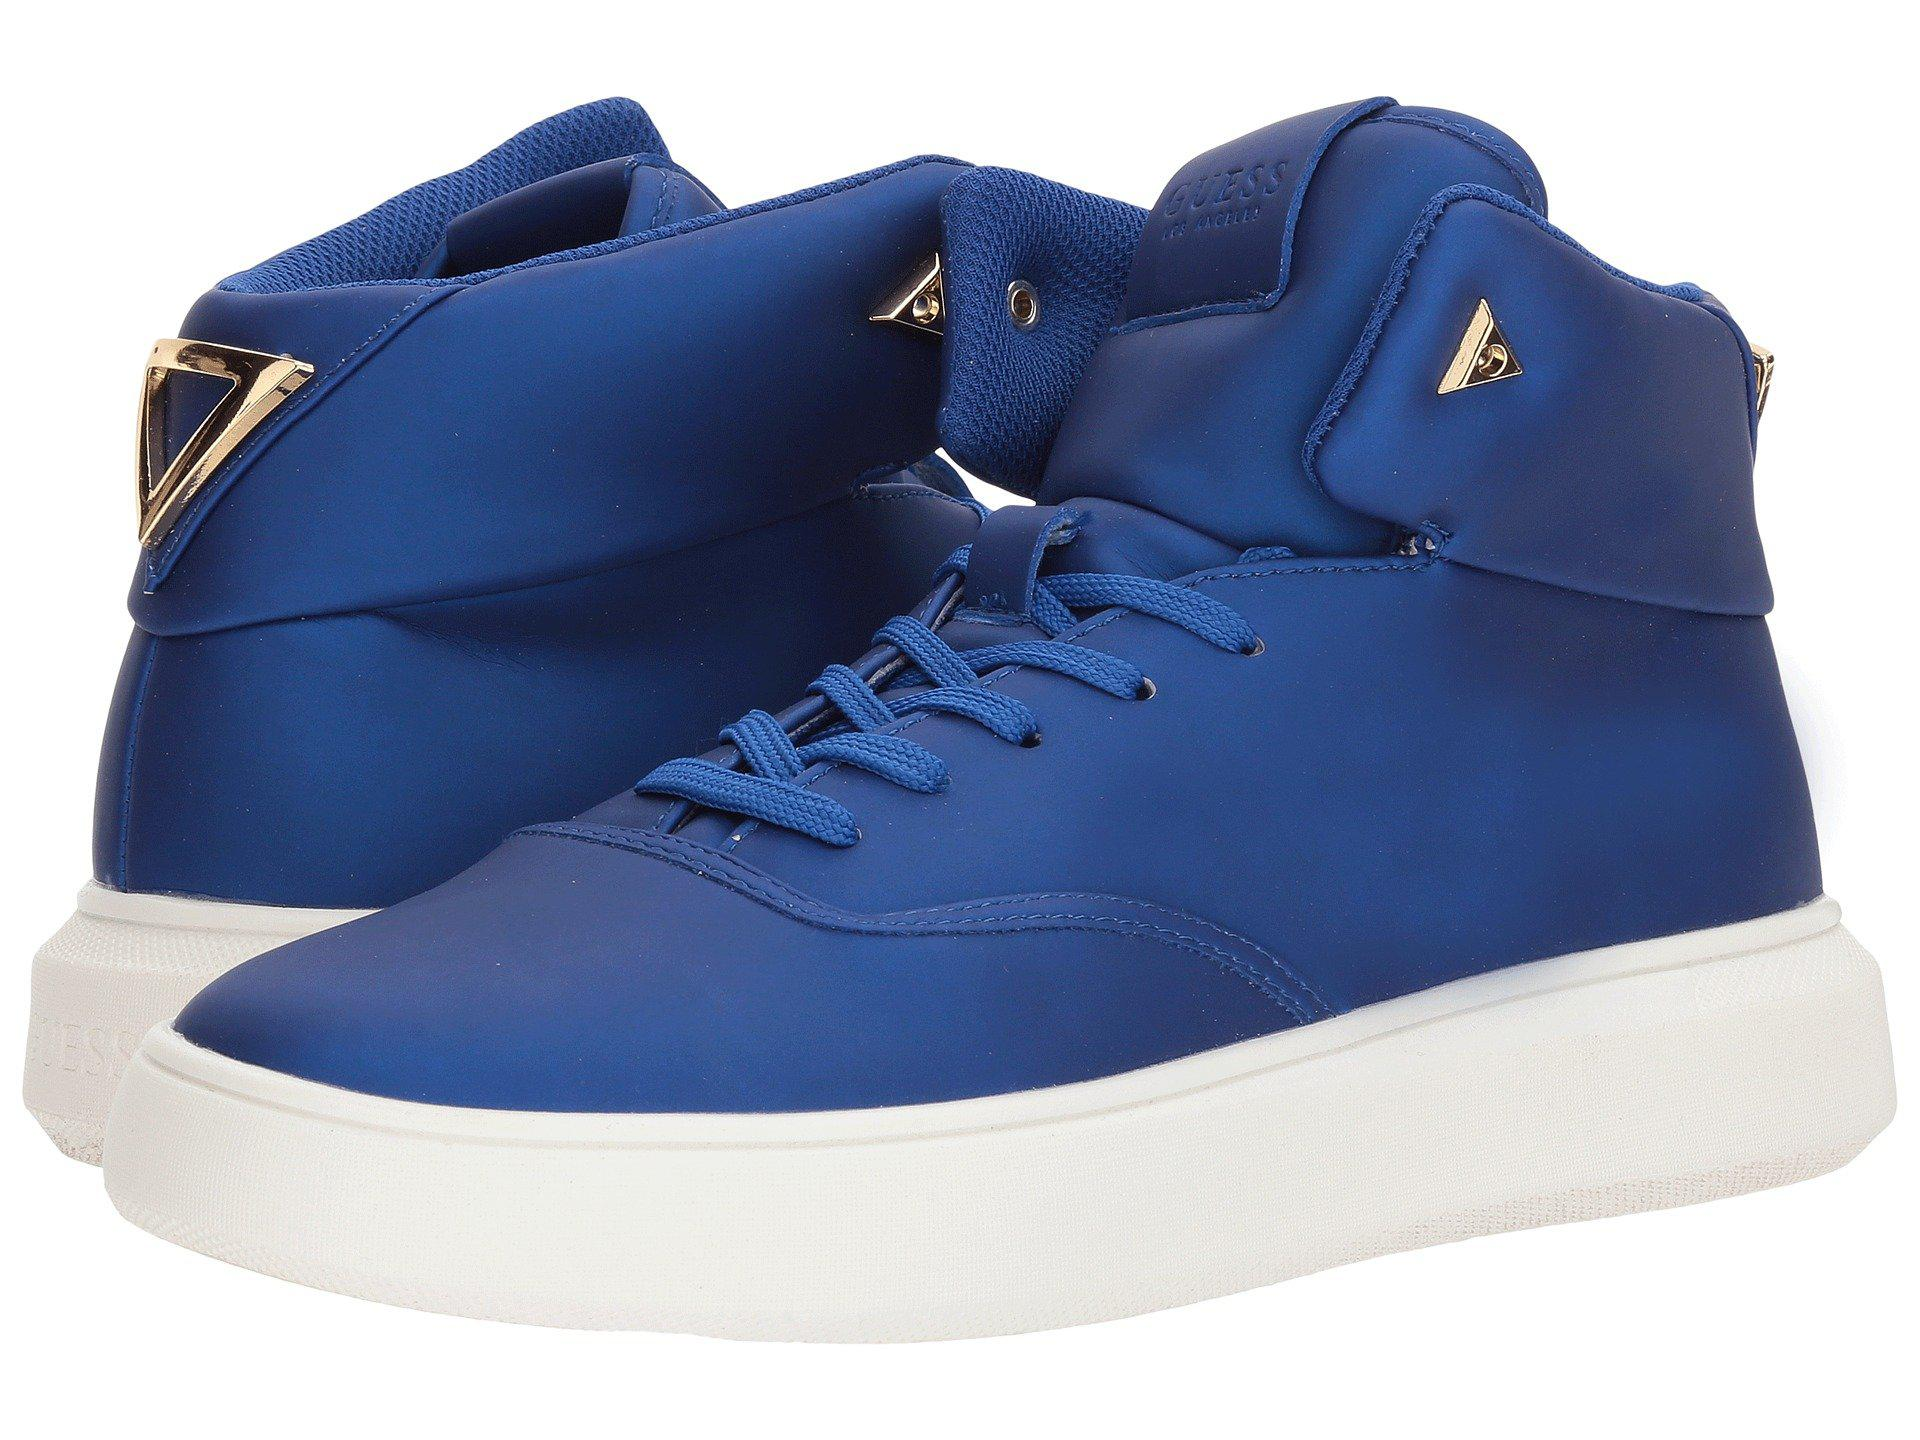 Guess Synthetic Draymind Sneaker in